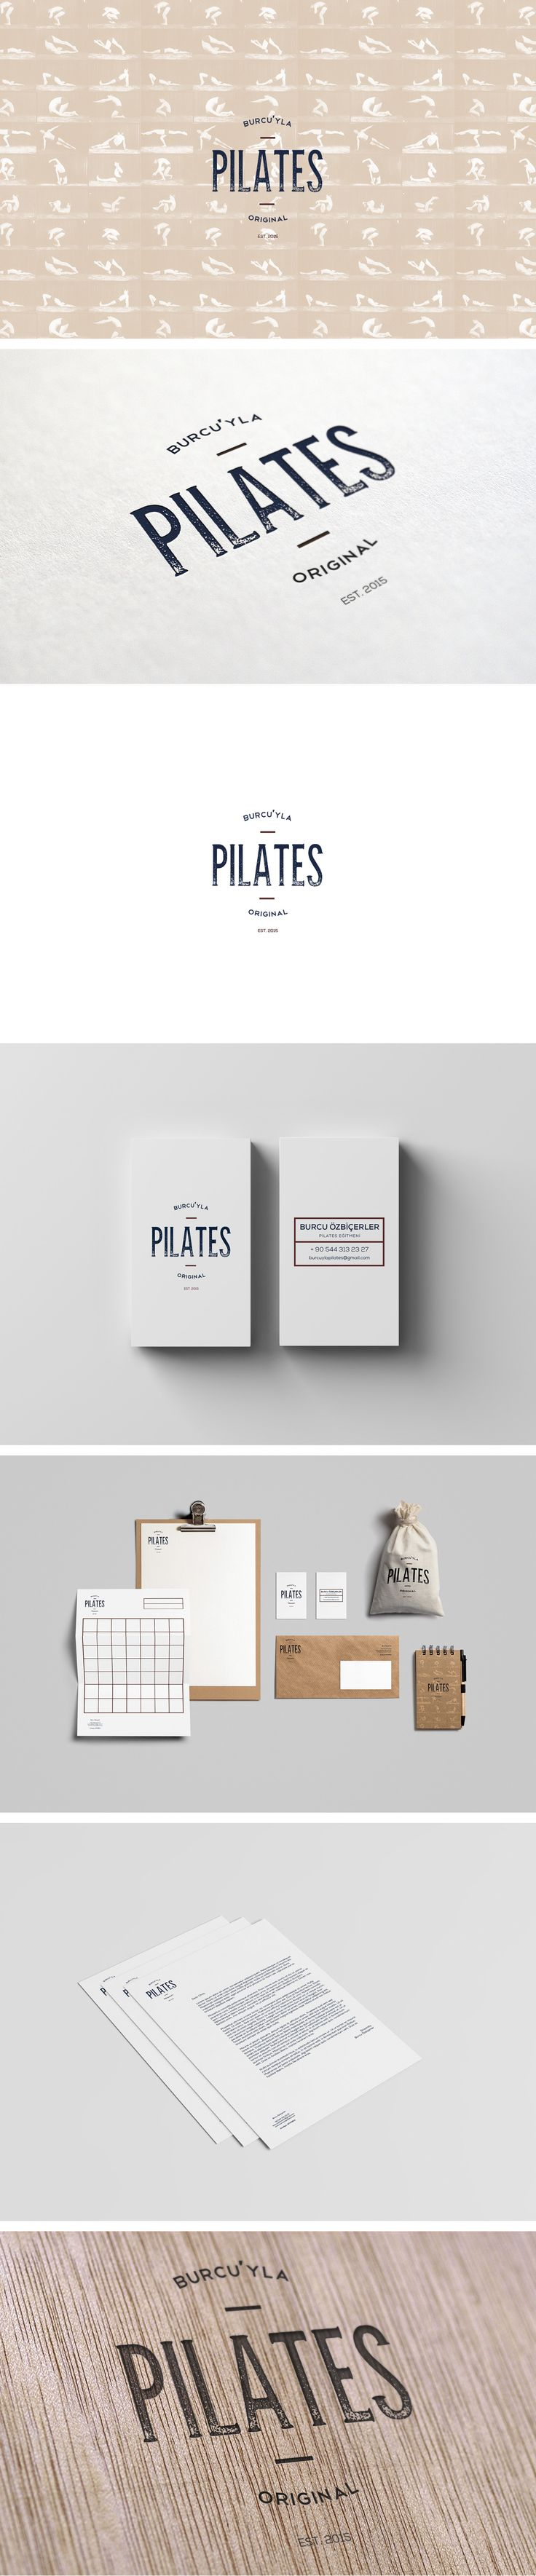 Best 100+ Pilates images on Pinterest | Exercise workouts, Physical ...